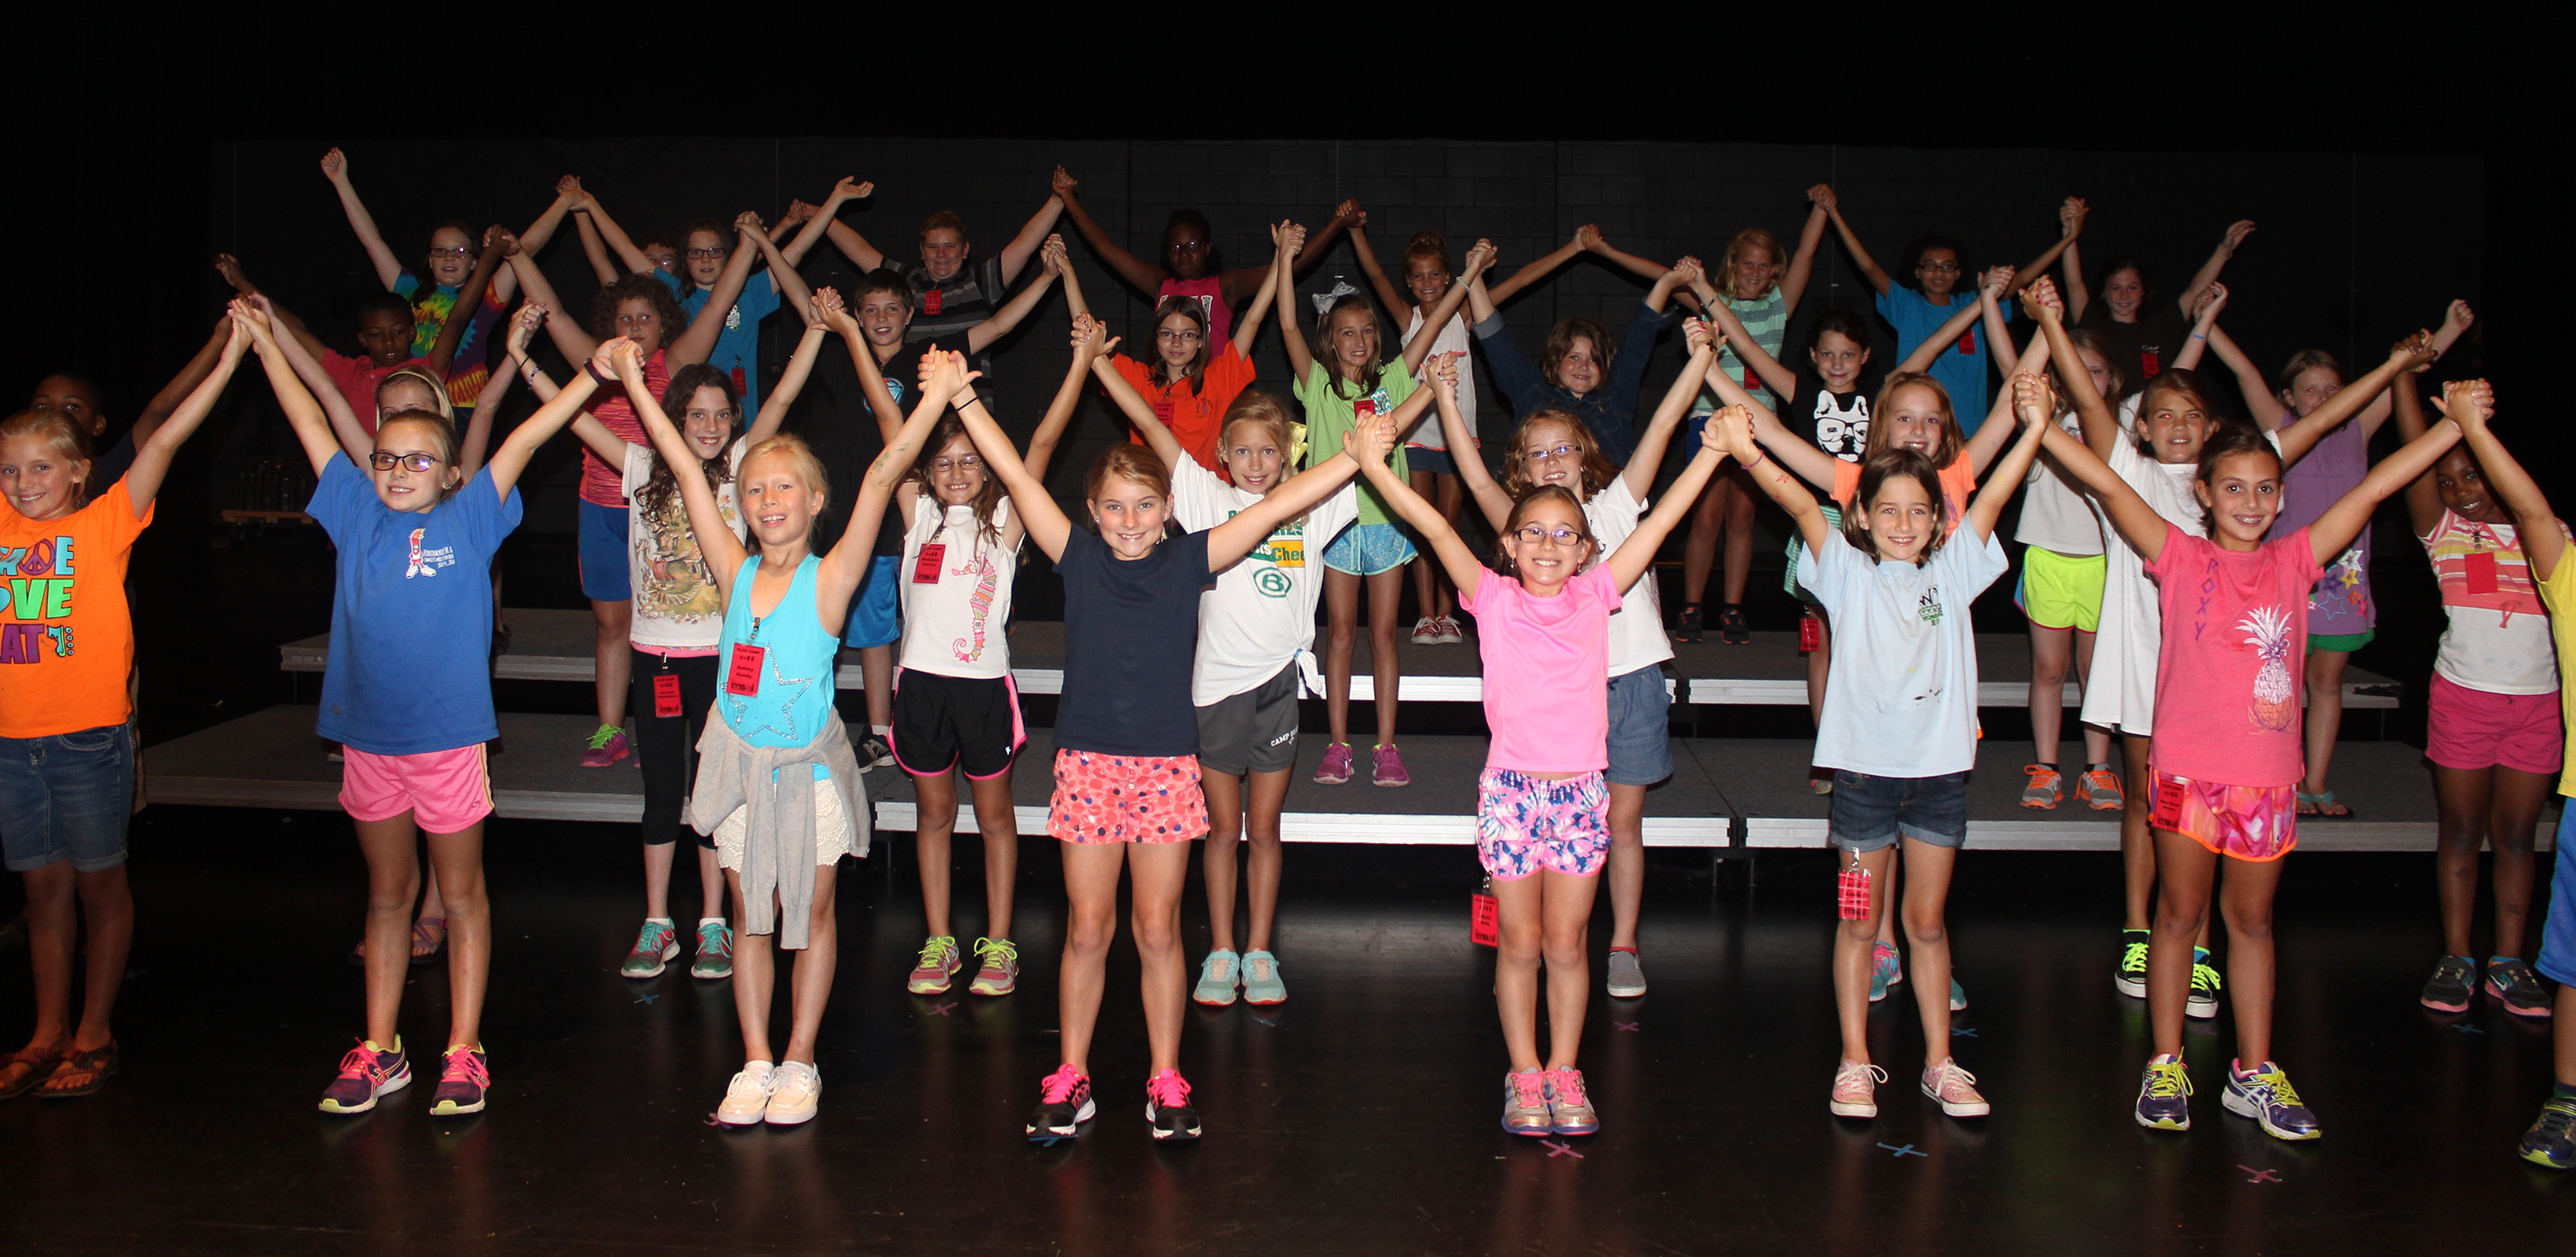 MSAI PLUS Campers are all smiles as they rehearse on the BPAC main stage for their final performance July 18 at 10 a.m.